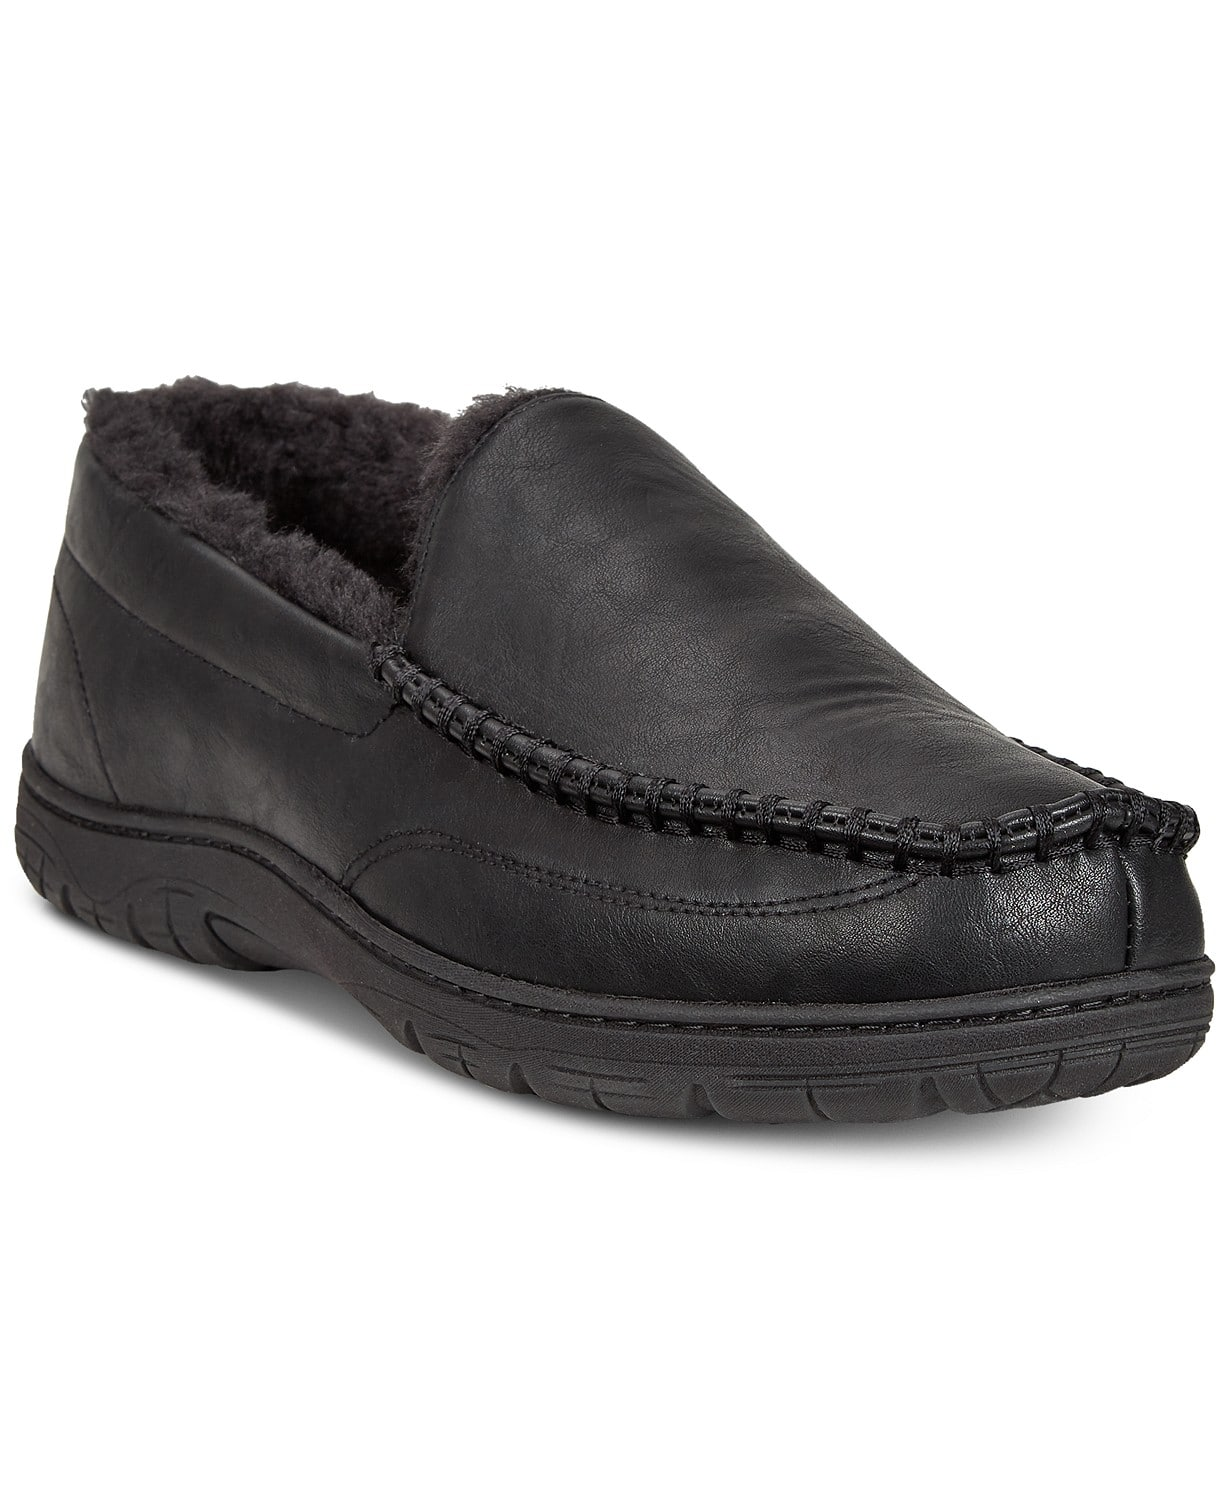 Men's Moccasin Toe Slip-On Slippers by 32 Degrees (Various Styles/Colors) at Macy's $9.96 + Free Store Pickup